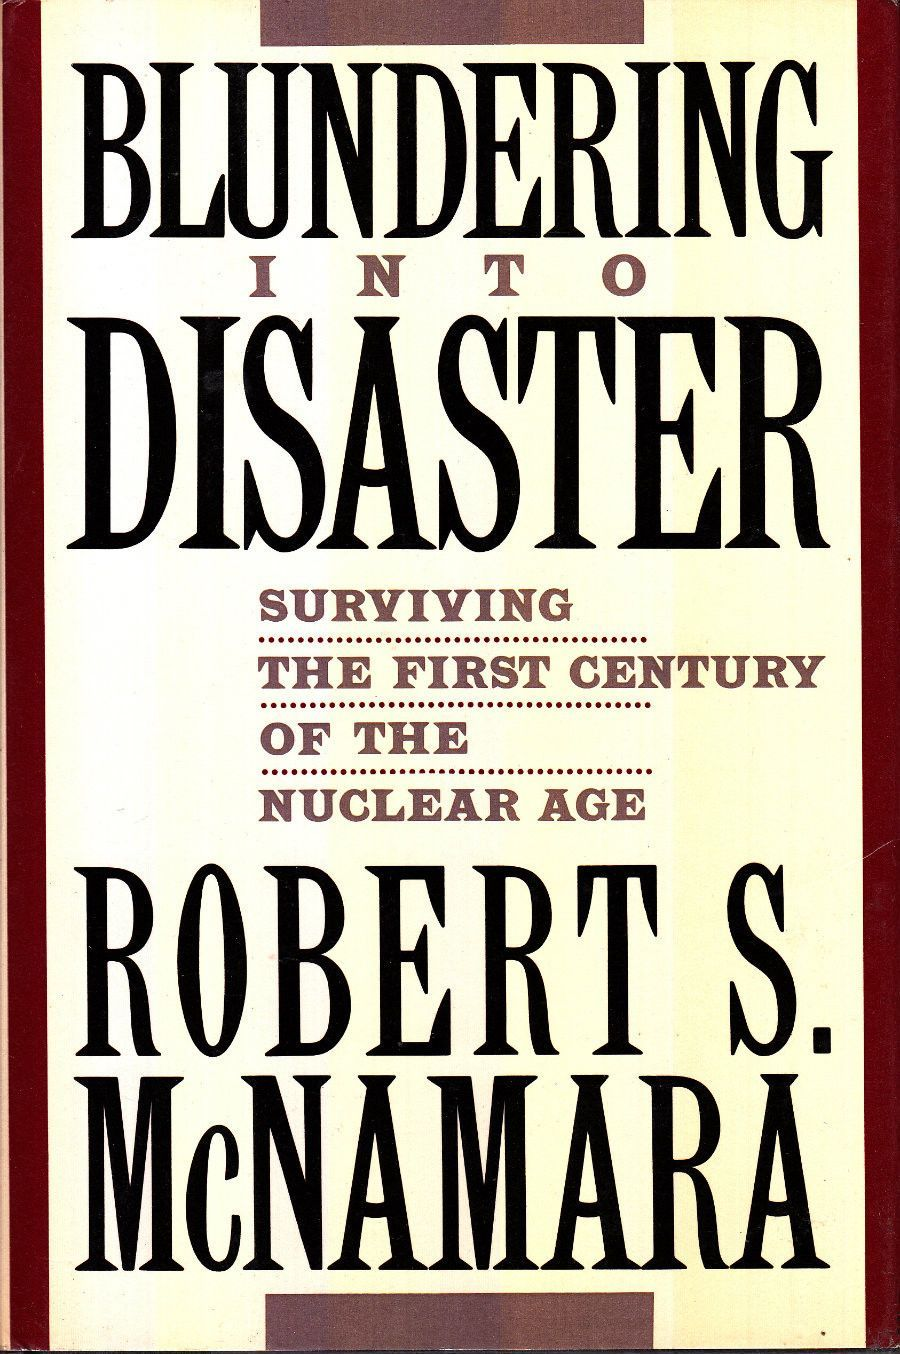 Blundering into disaster surviving the first century of